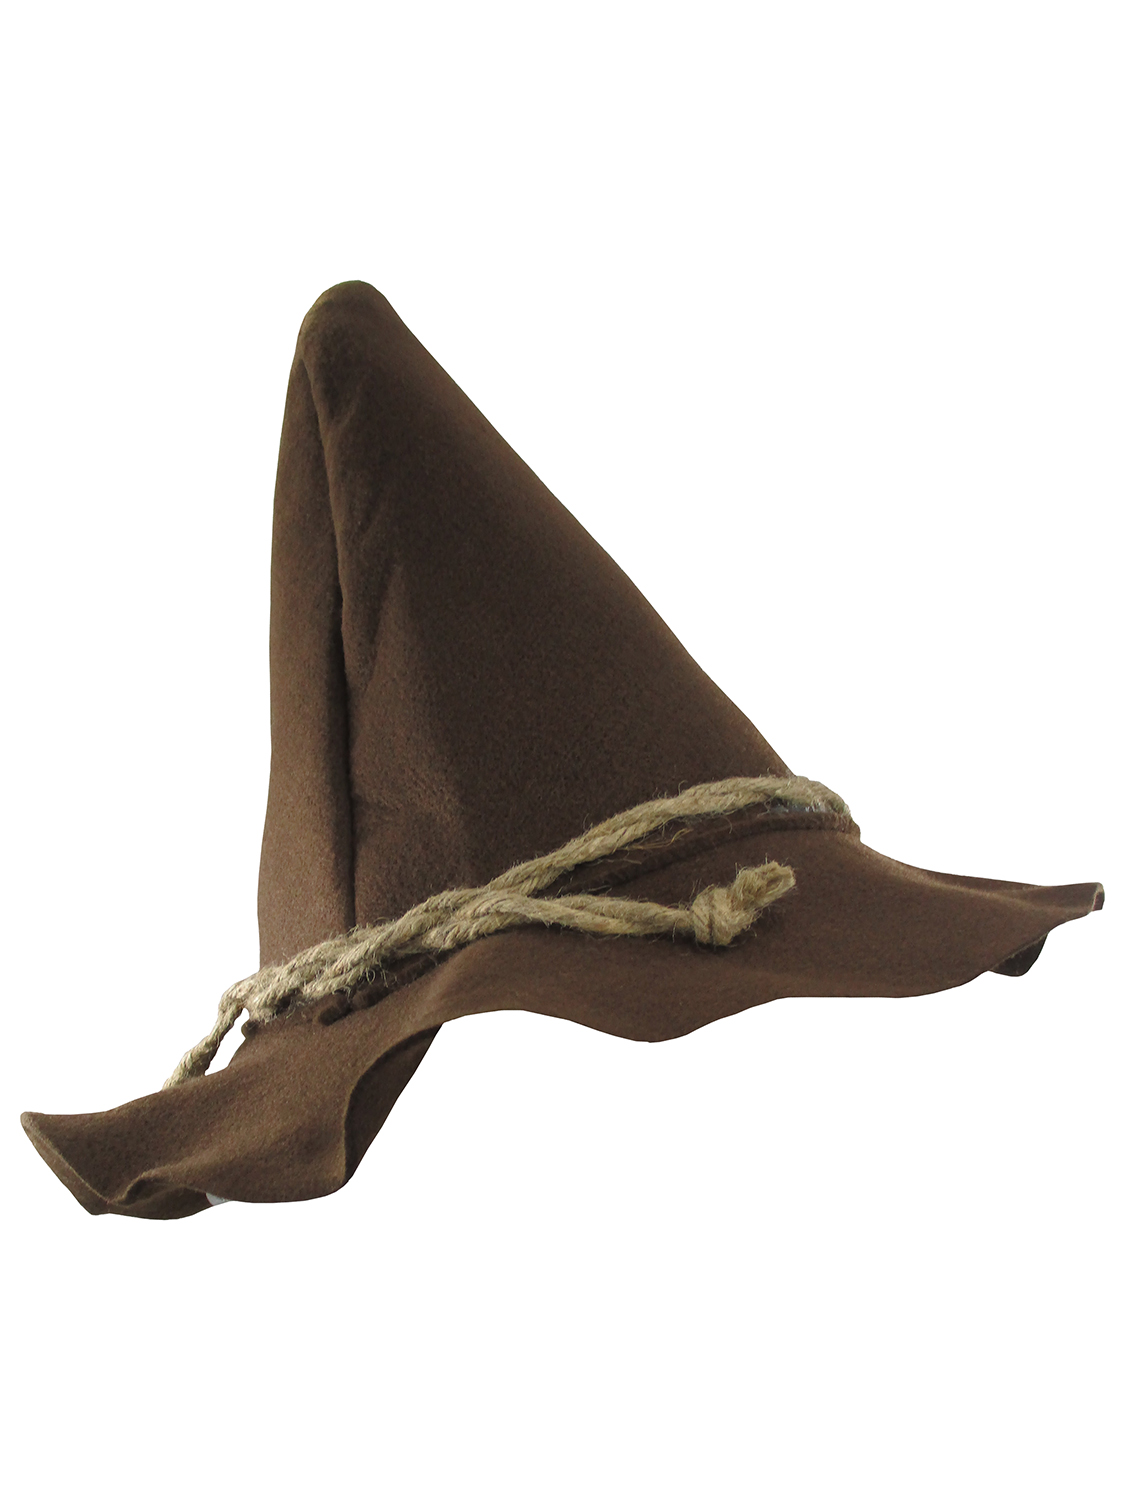 thumbnail 15 - Adult Scarecrow Hat Deluxe Felt Oktoberfest Wizard Witch Hillbilly Hat Costume